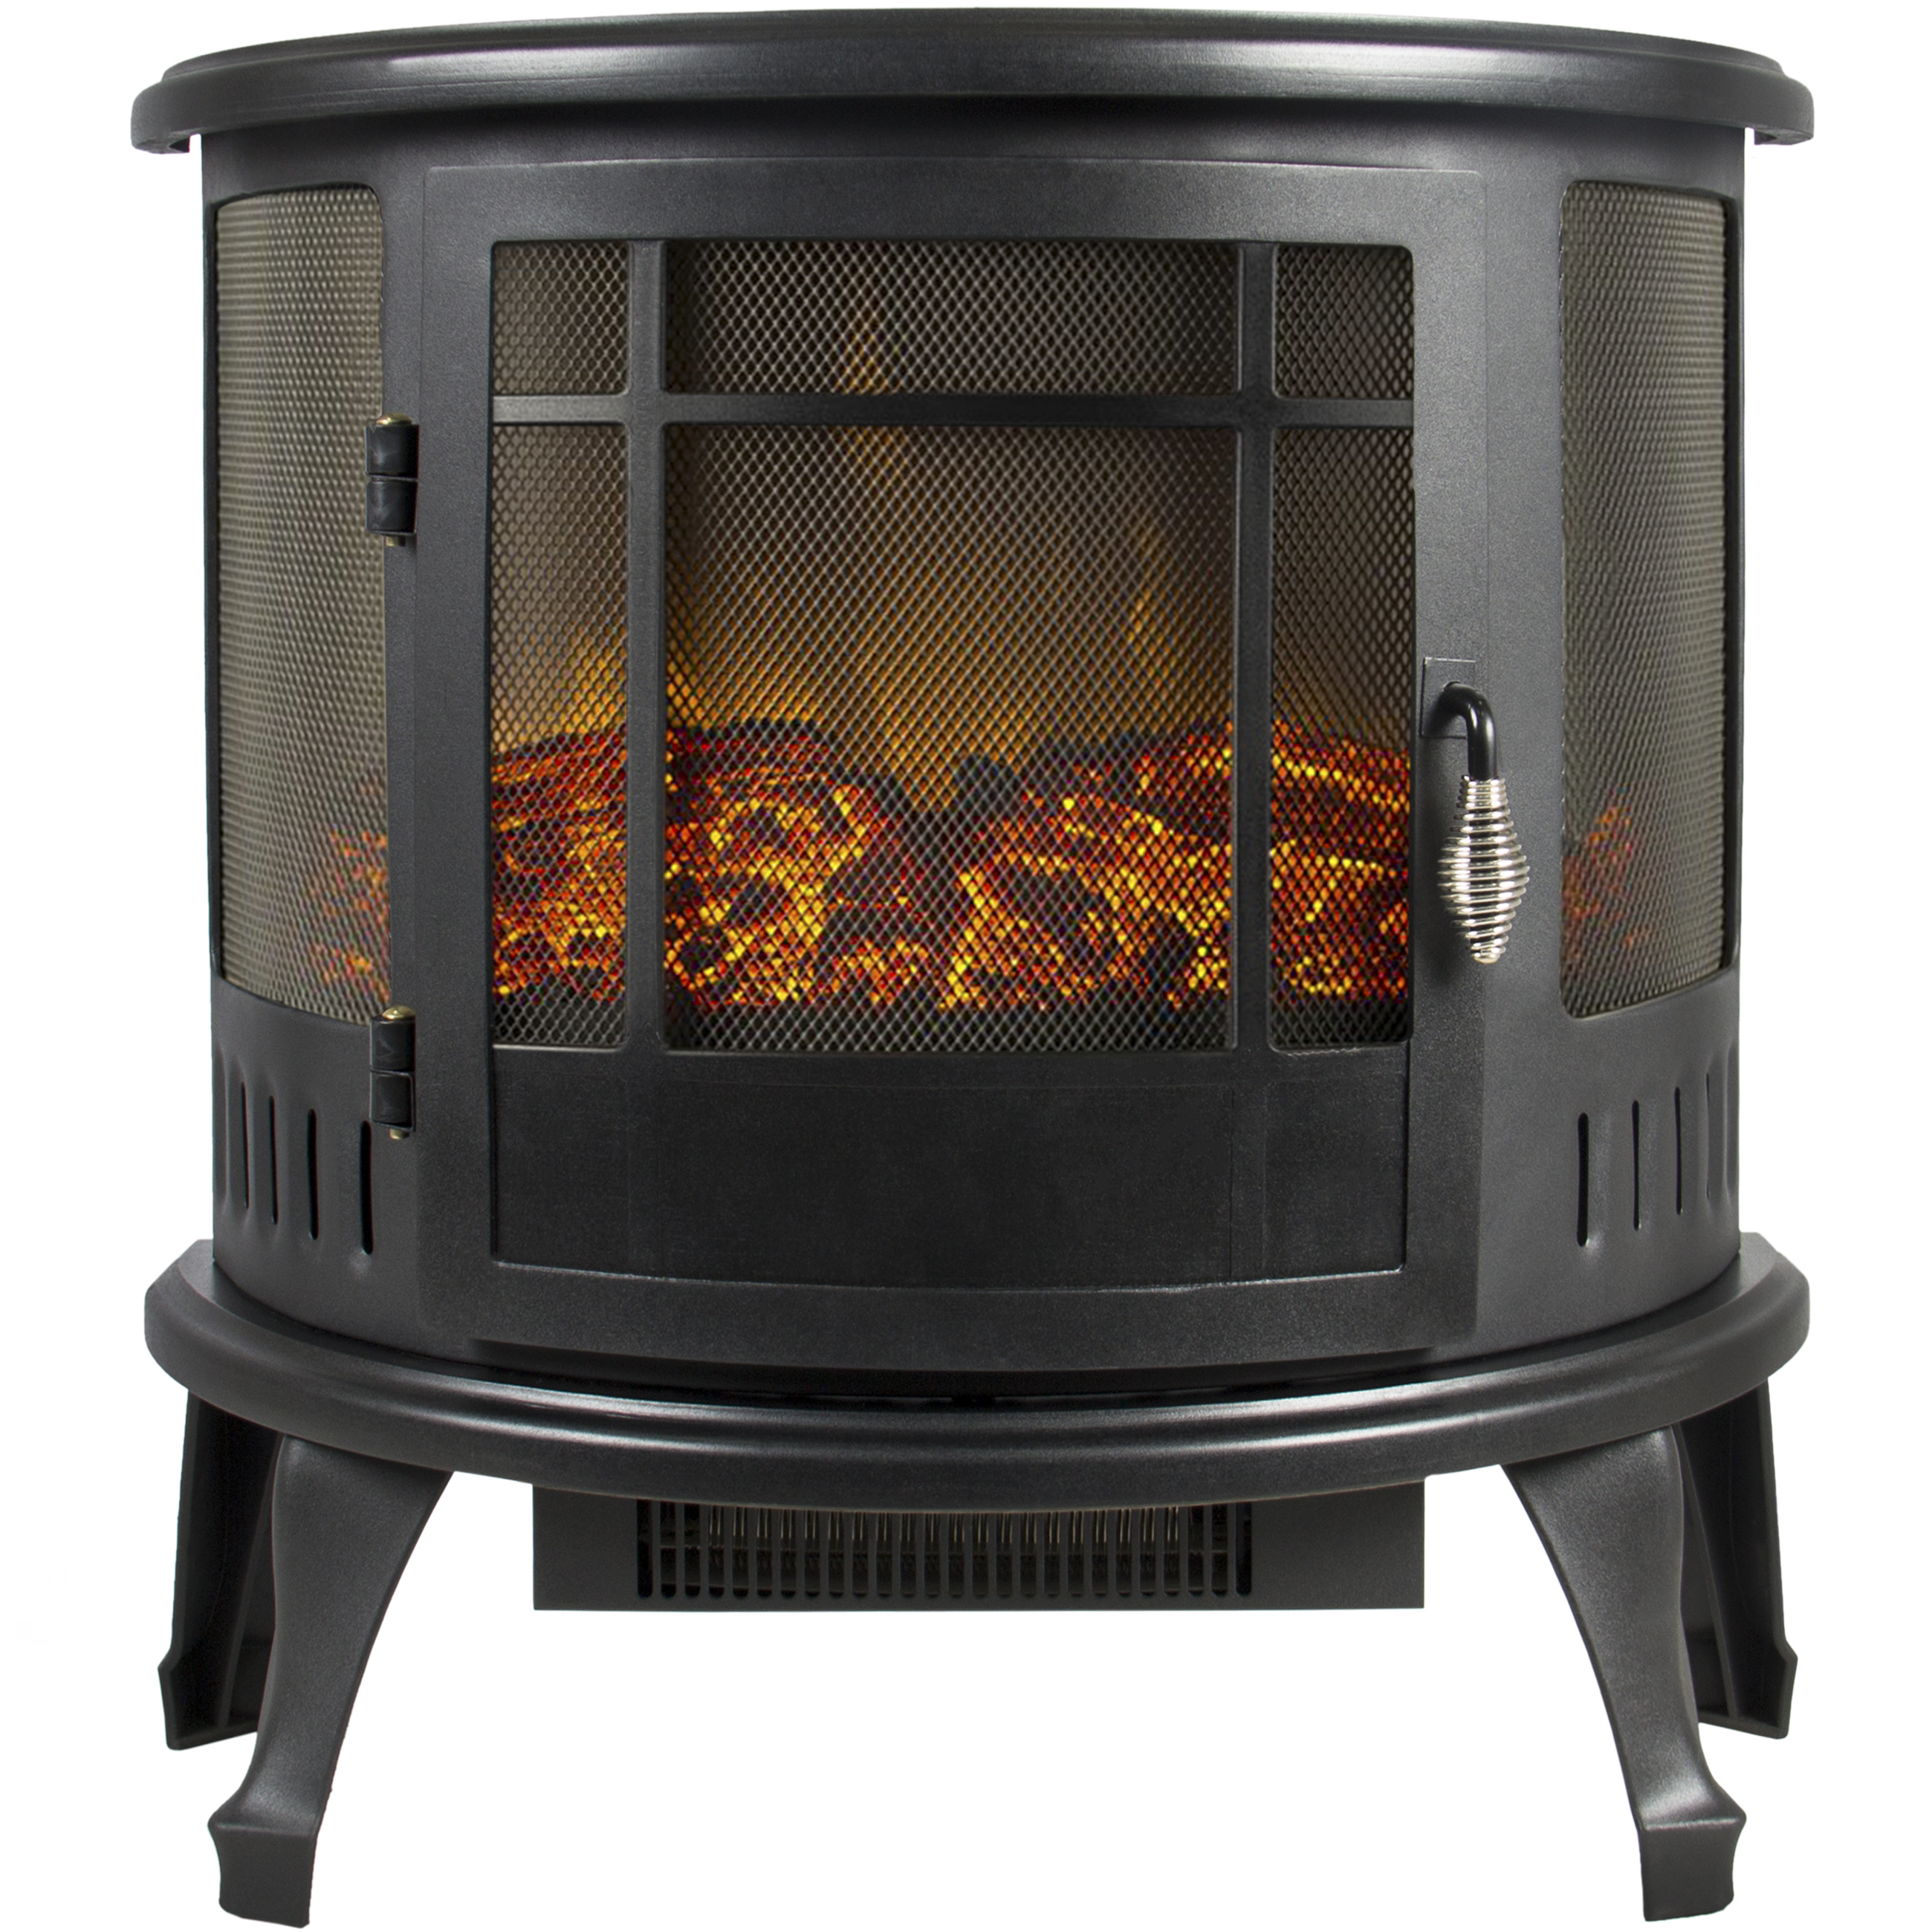 Portable Electric Fireplace Stove 1500W Space Heater Realistic Flame Perfect Design for